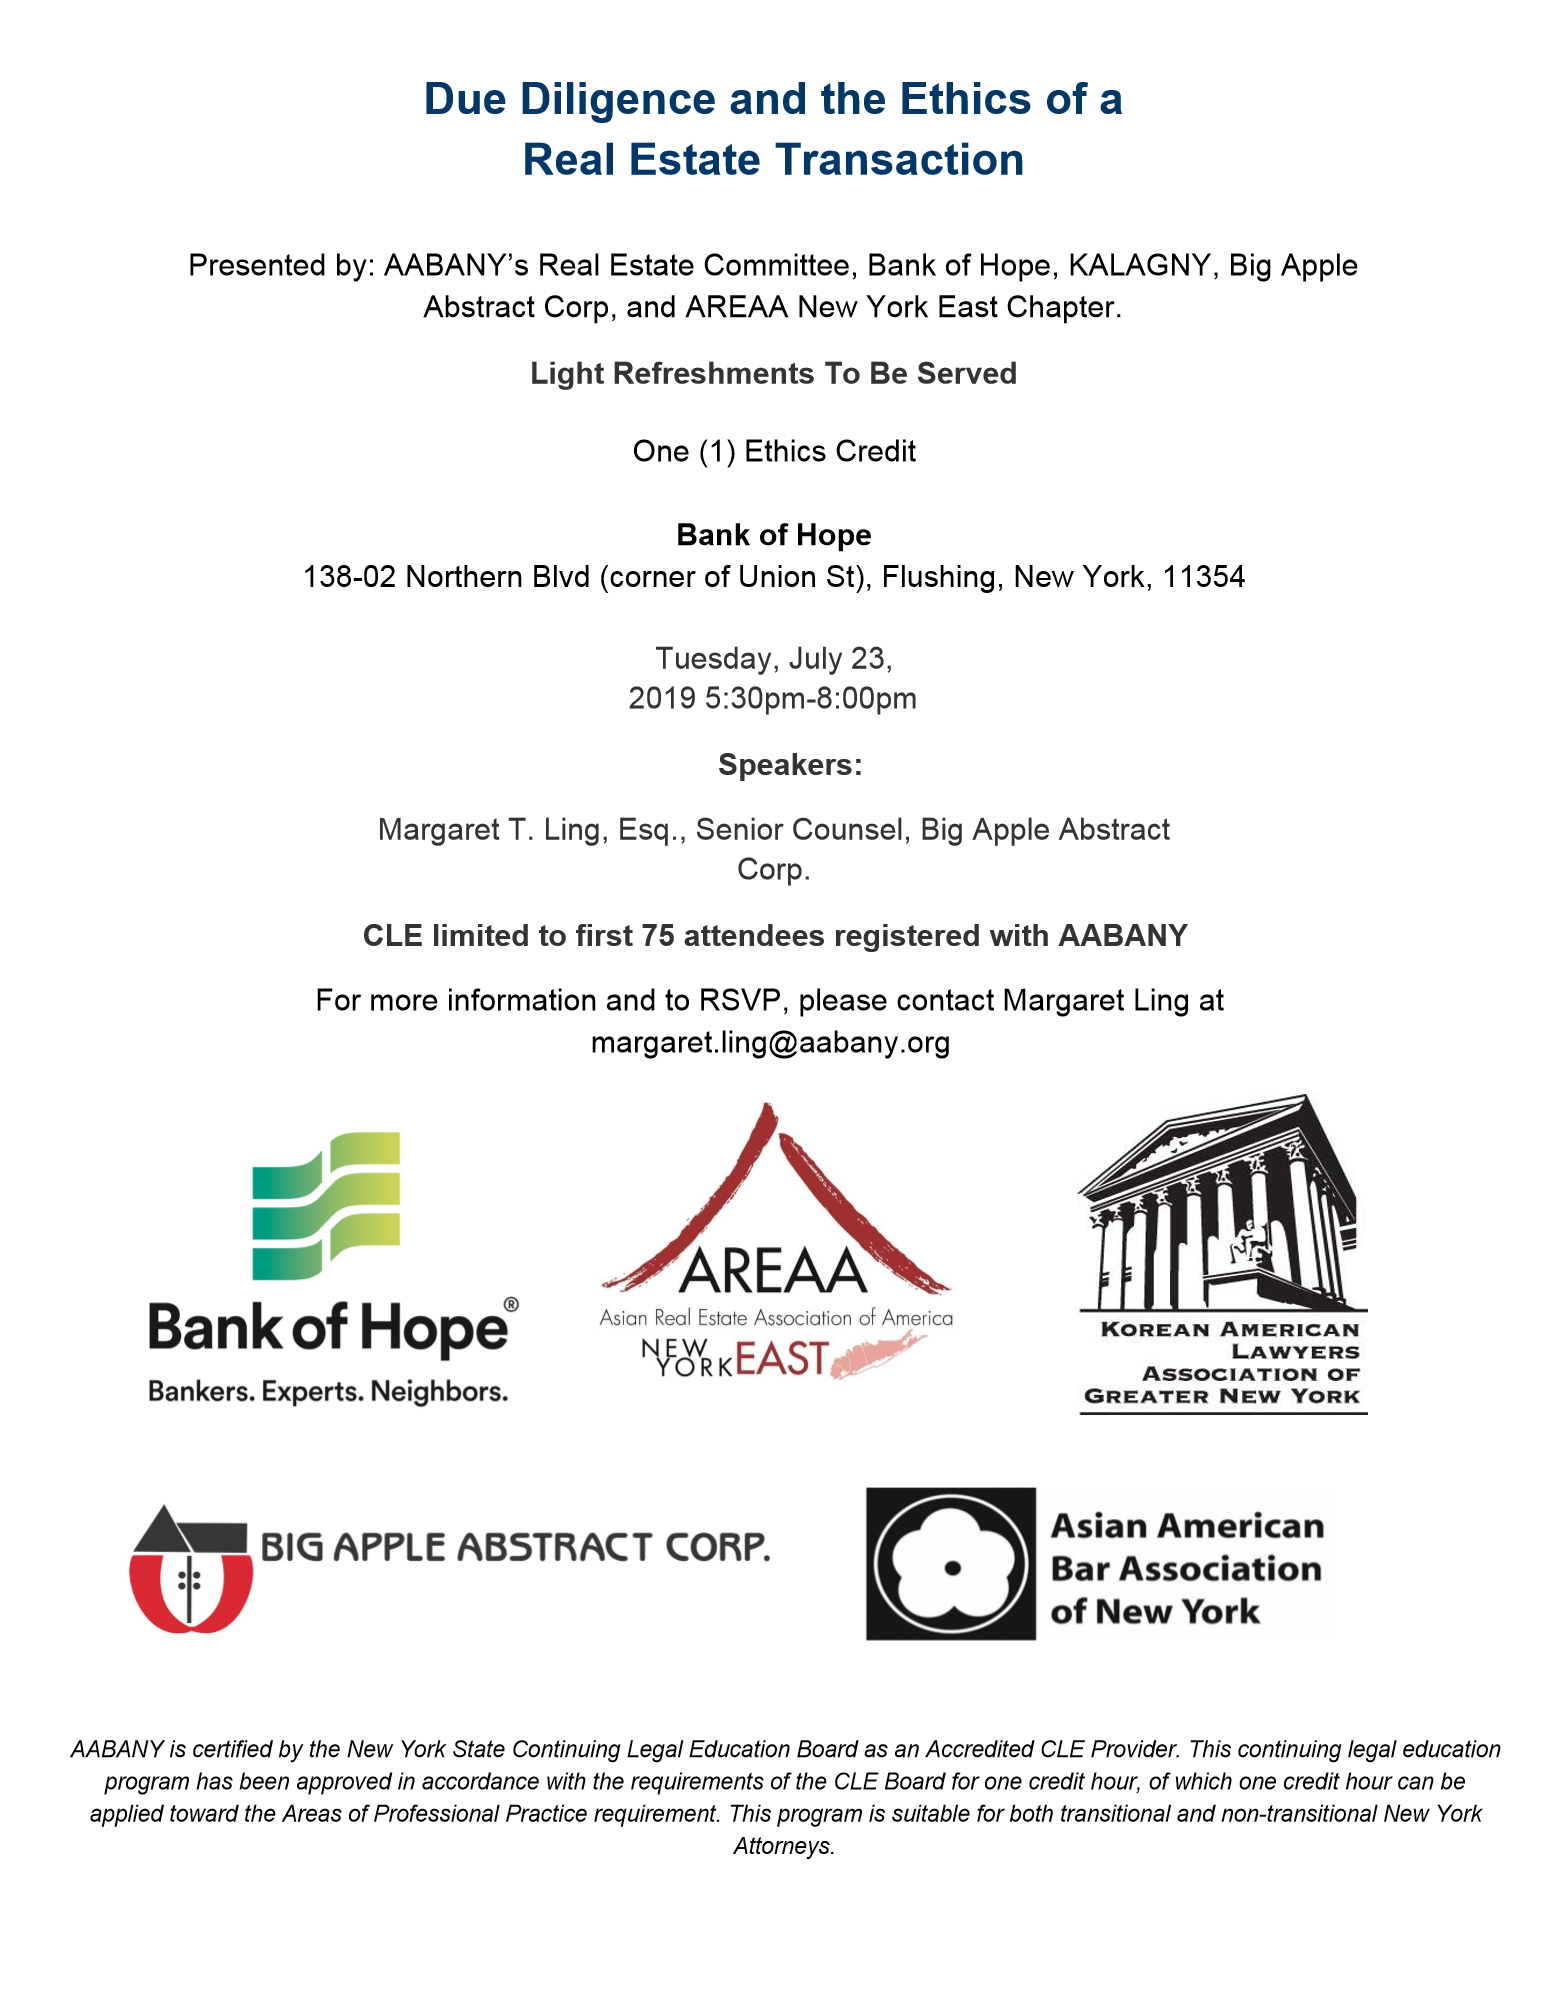 AABANY Announcements: July 8, 2019 - Asian American Bar Association